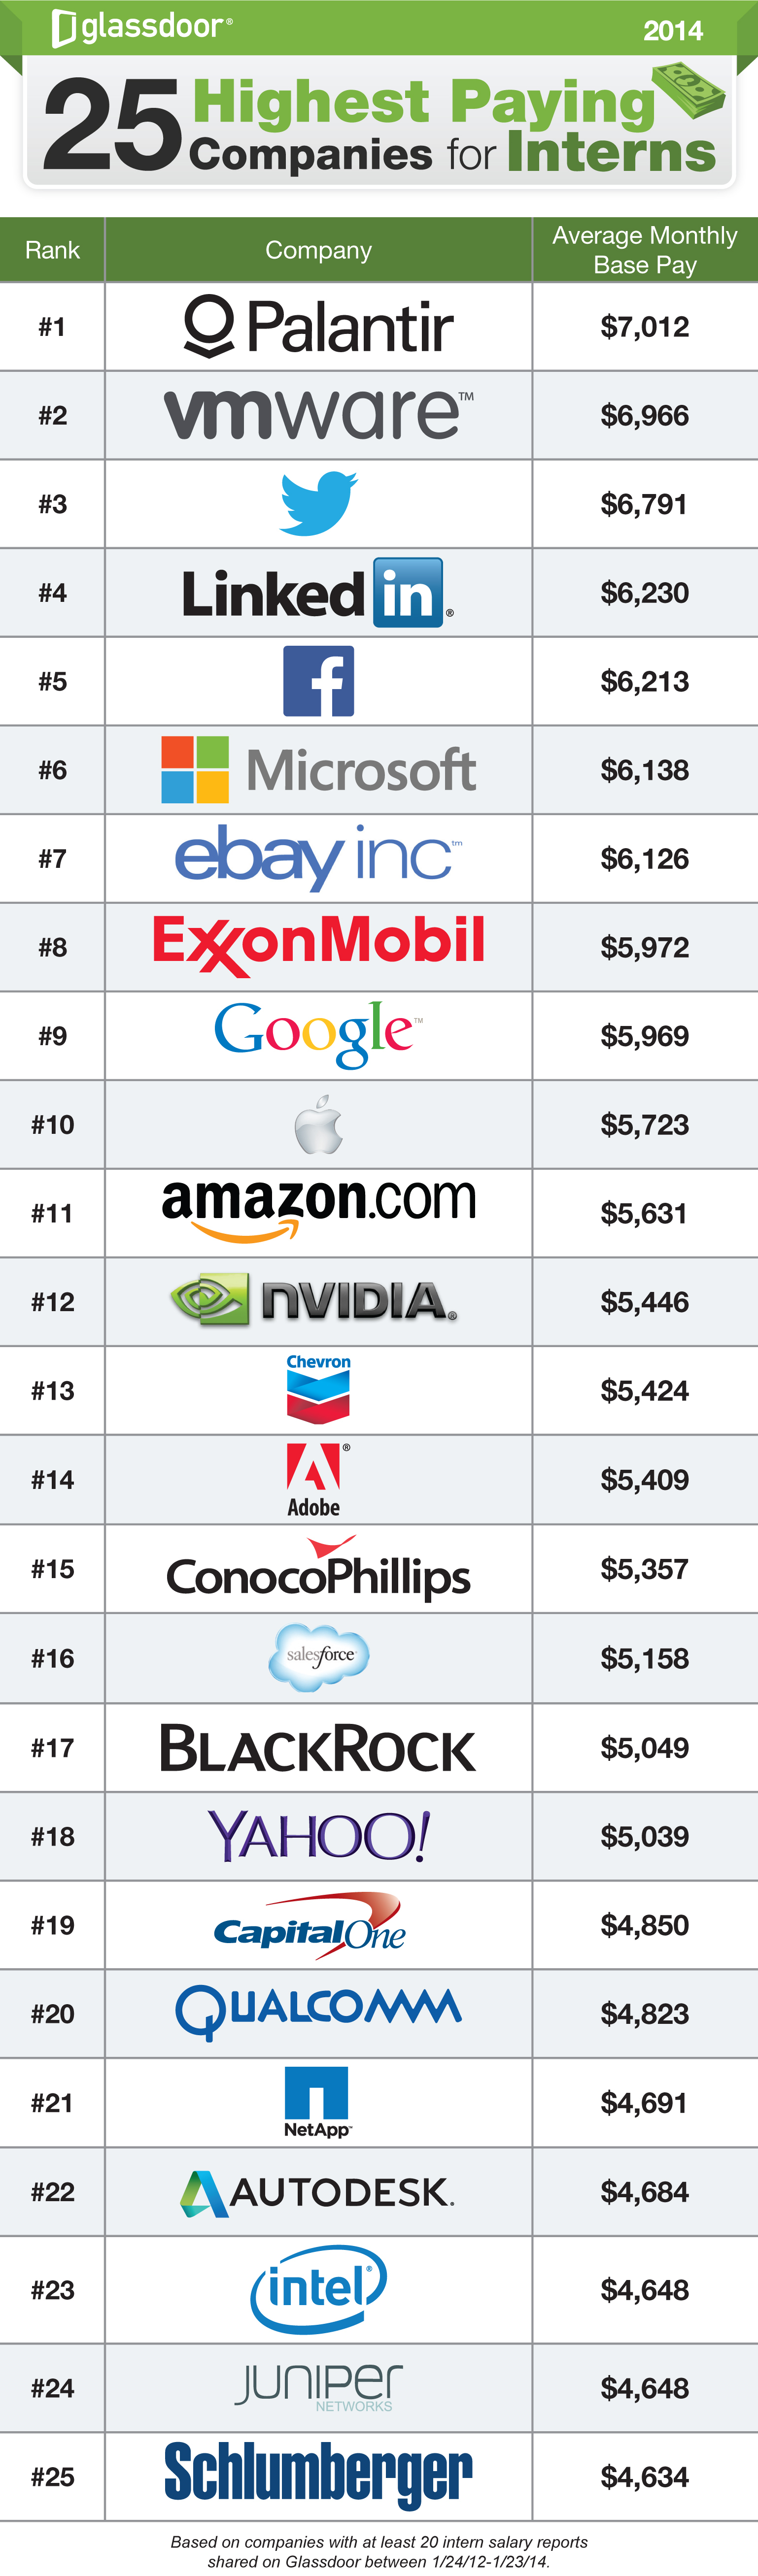 25 highest paying companies for interns